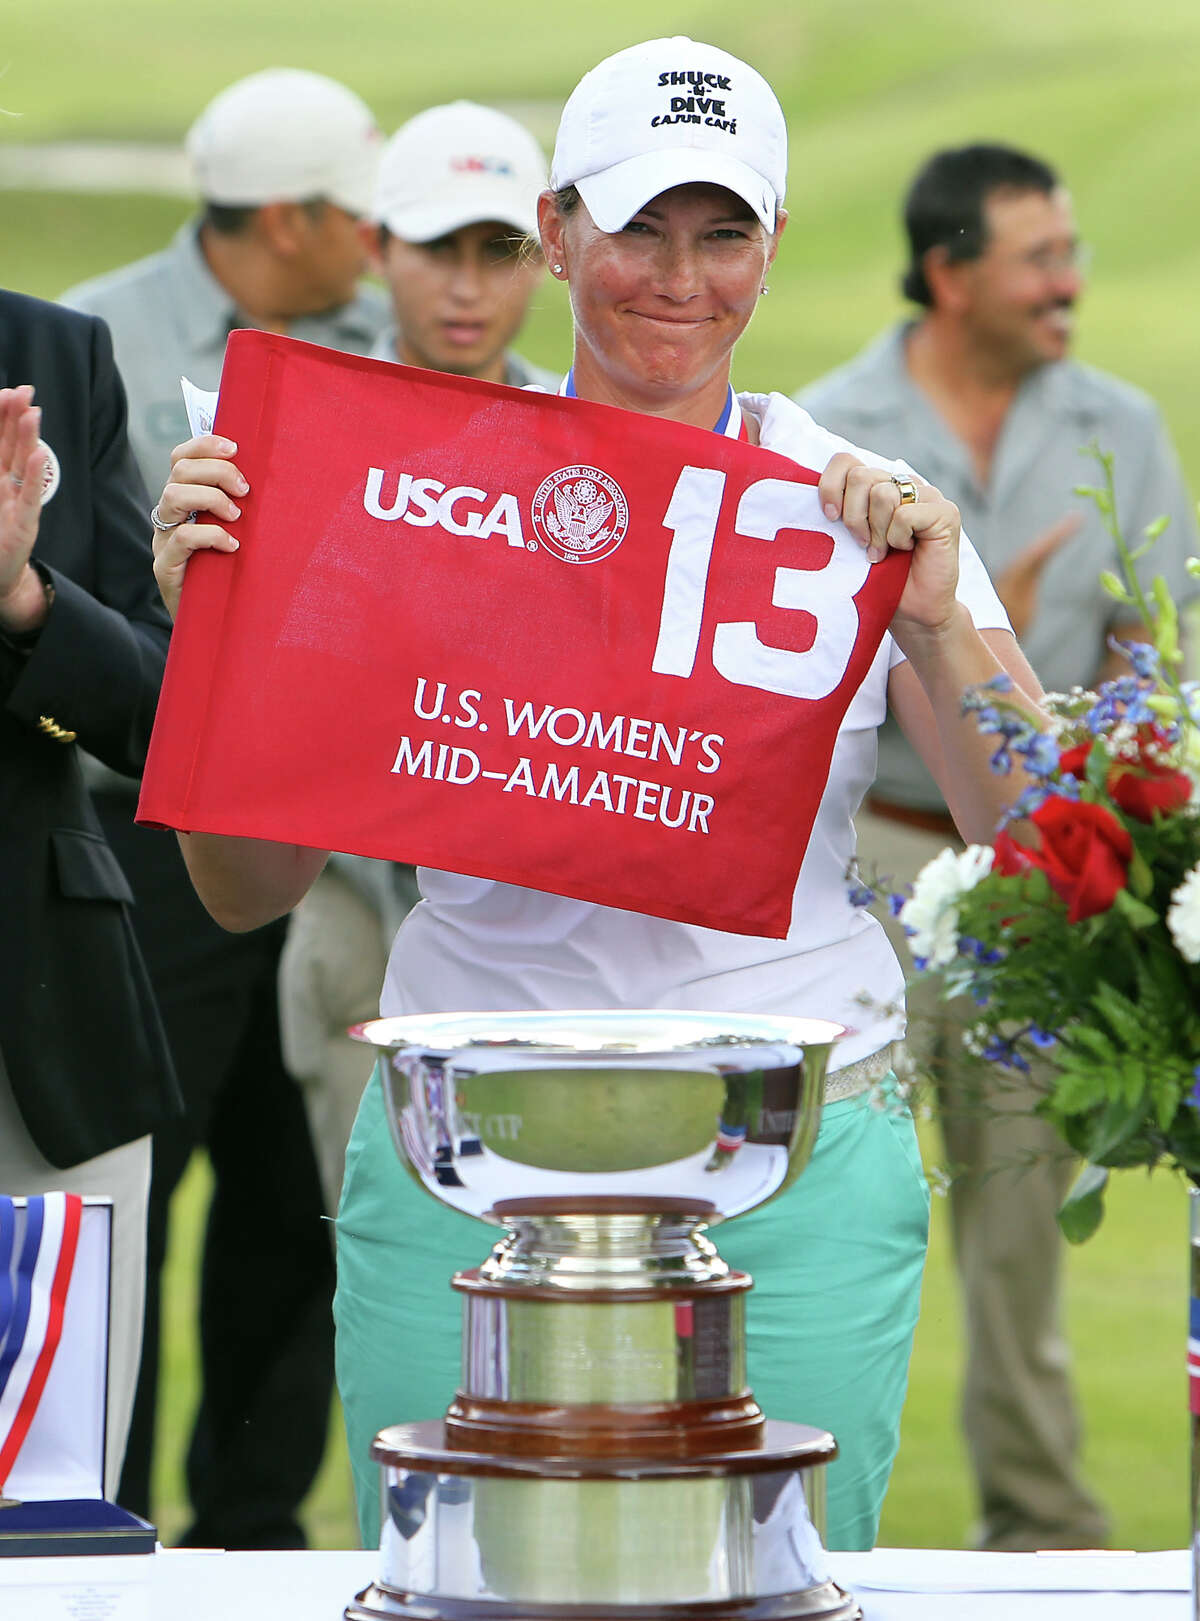 Meghan Stasi of Oakland Park, Florida shows the flag at the hole which she eventually defeated Liz Waynick of Scottsdale, Arizona, 6&5, during the trophy presentation at the USGA U.S. Women's Mid-Amateur Championships at Briggs Ranch Golf Club on Thursday, Oct. 11, 2012. Stasi won the title for the fourth time.